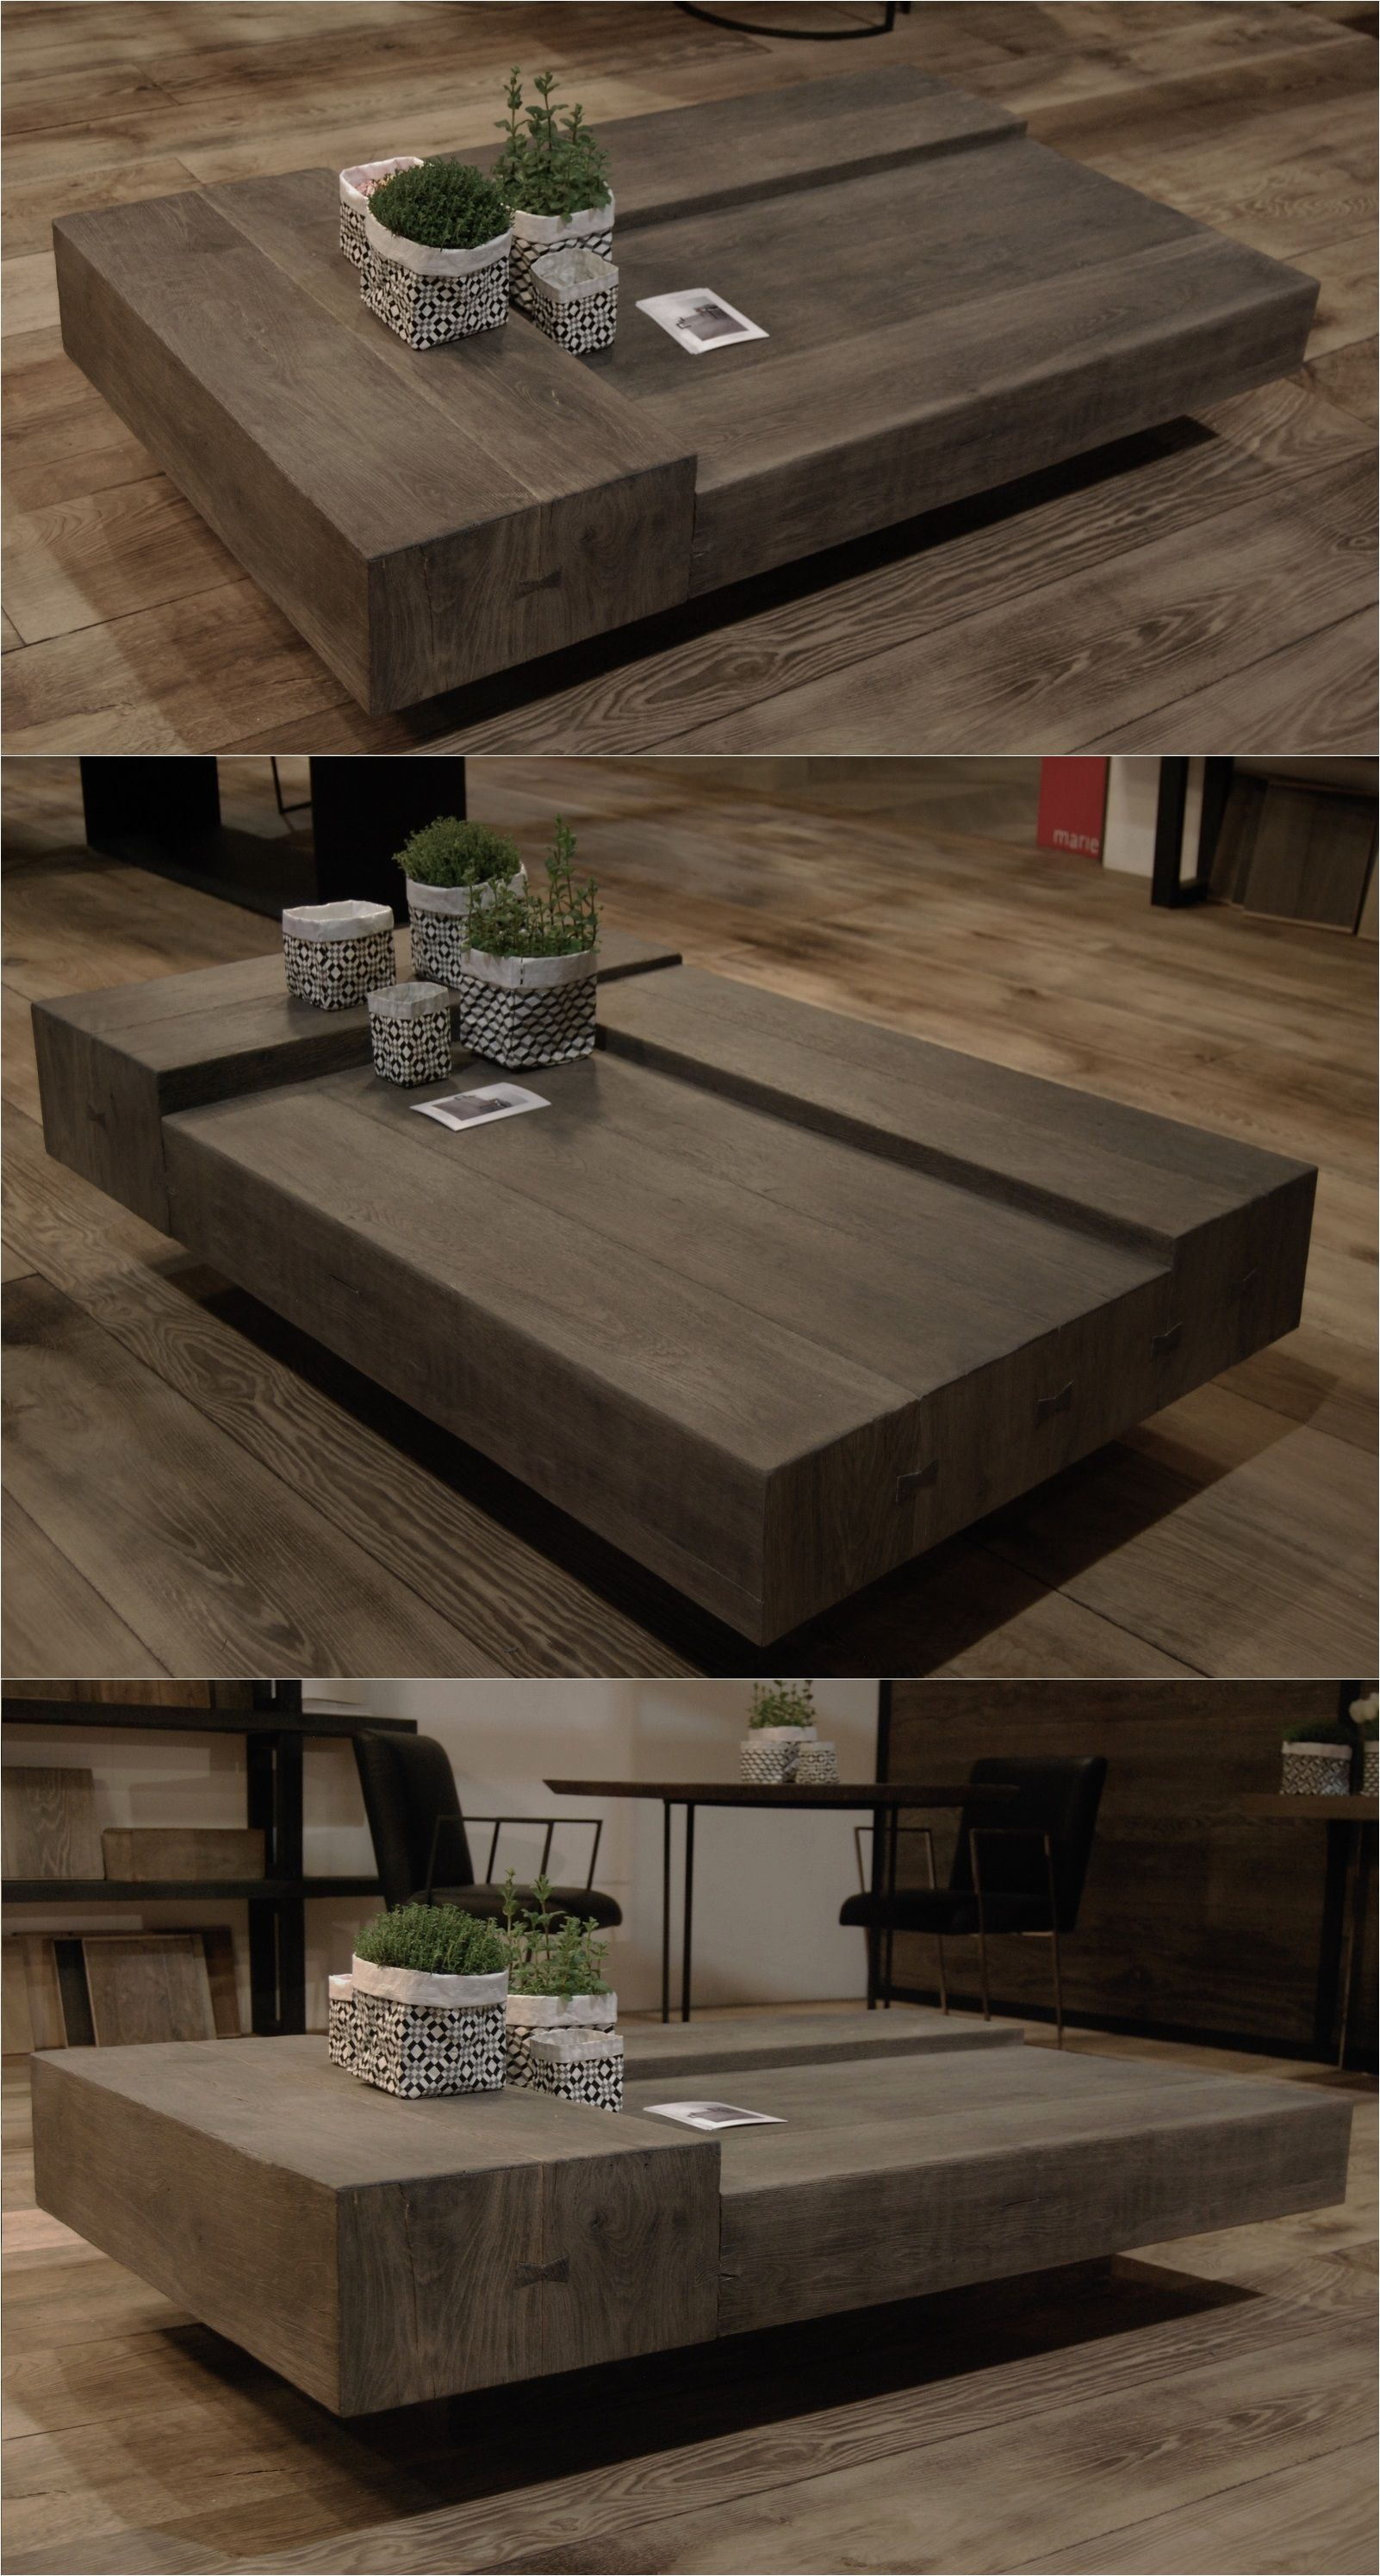 Triple Wooden Handmade Low Rectangular Coffee Table By Didier Cabuy Coffee Table Inspiration Coffee Table Square Coffee Table